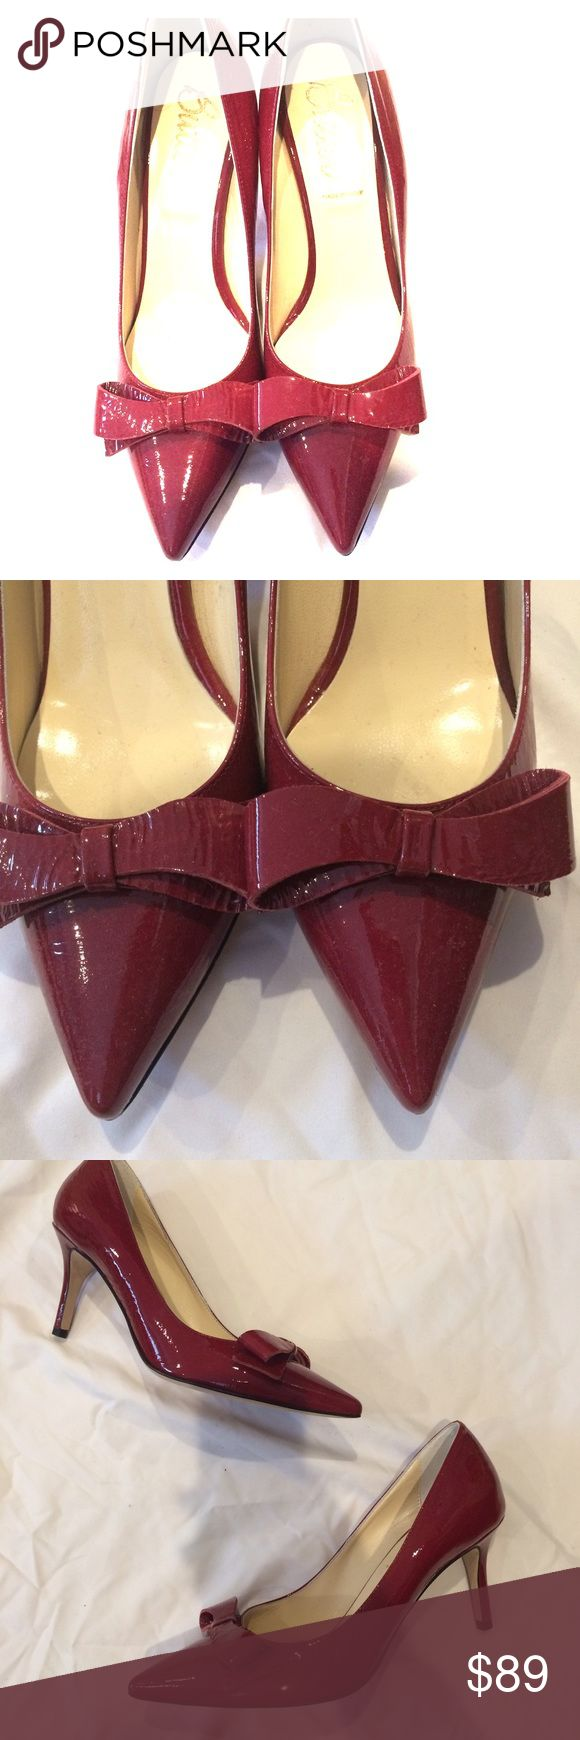 Beautiful Italian Made Shoes!! 👠 These patent cranberry colored BUTTER shoes are absolutely gorgeous!! Never worn only tried on around the house!! 👠 These shoes are classic and very well made!!! Butter Shoes Shoes Heels